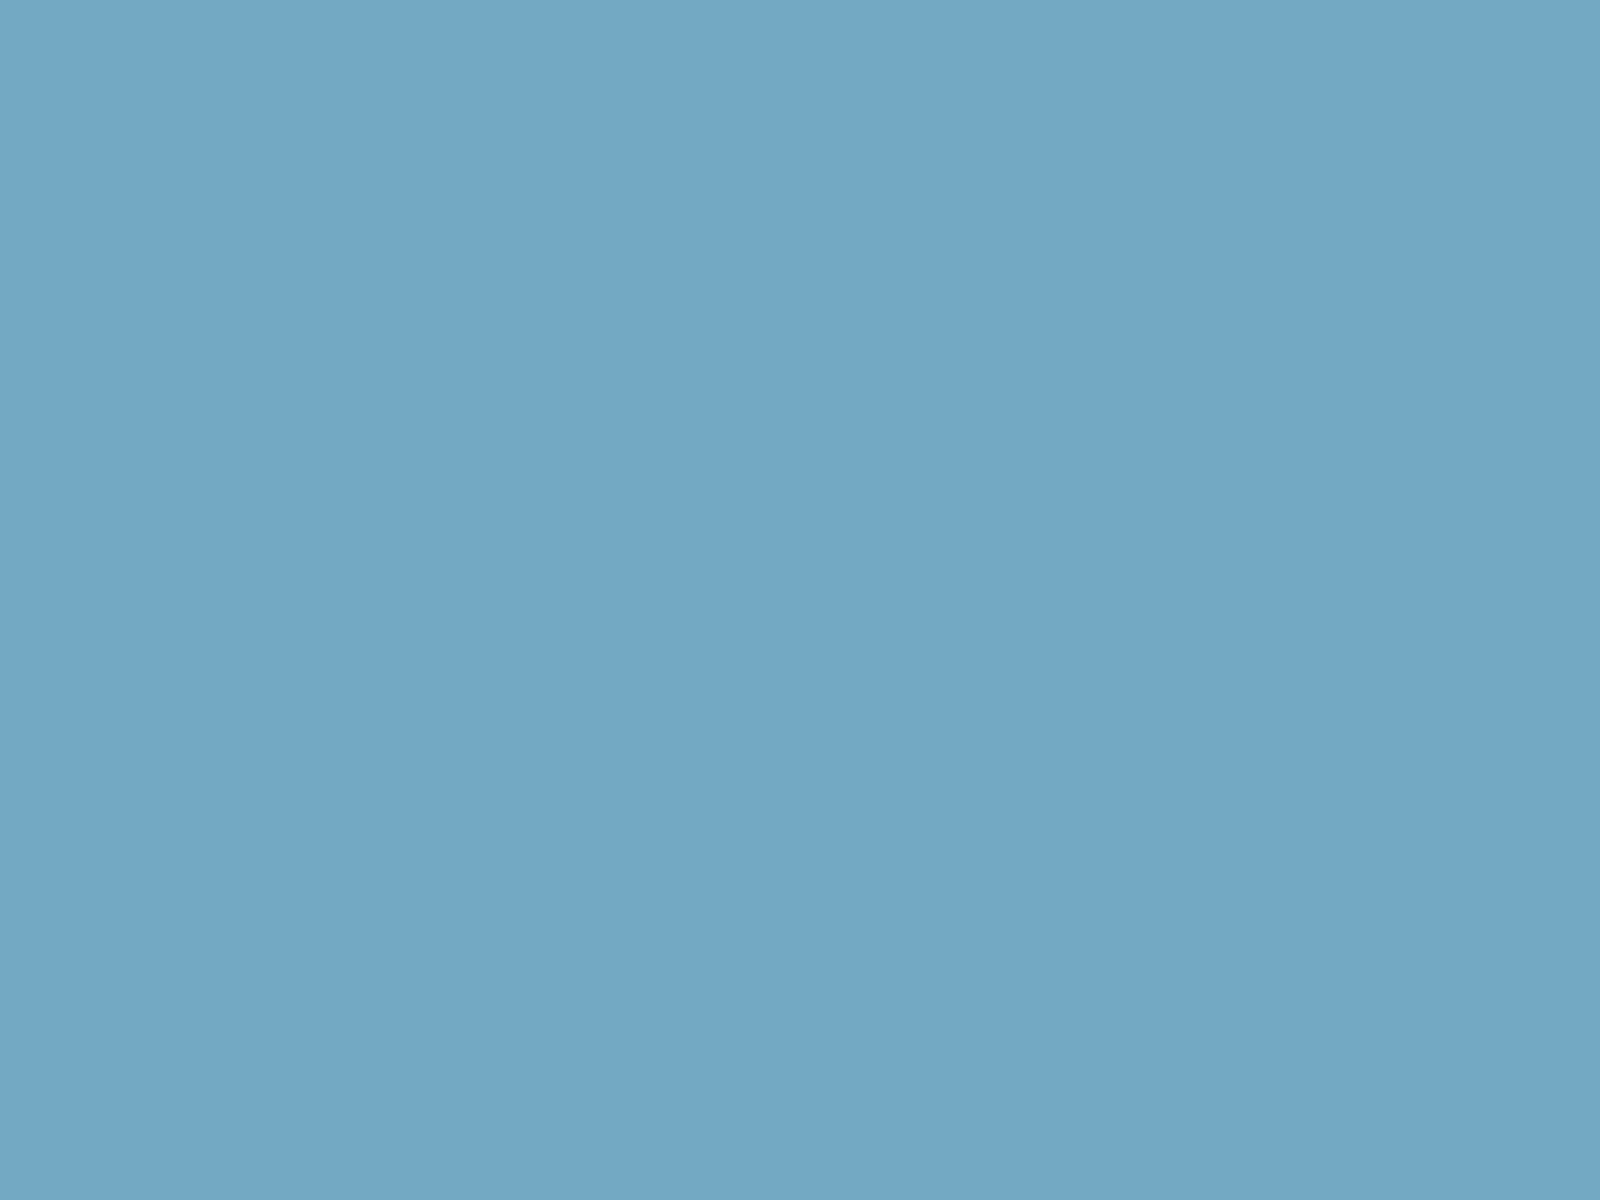 1600x1200 Moonstone Blue Solid Color Background